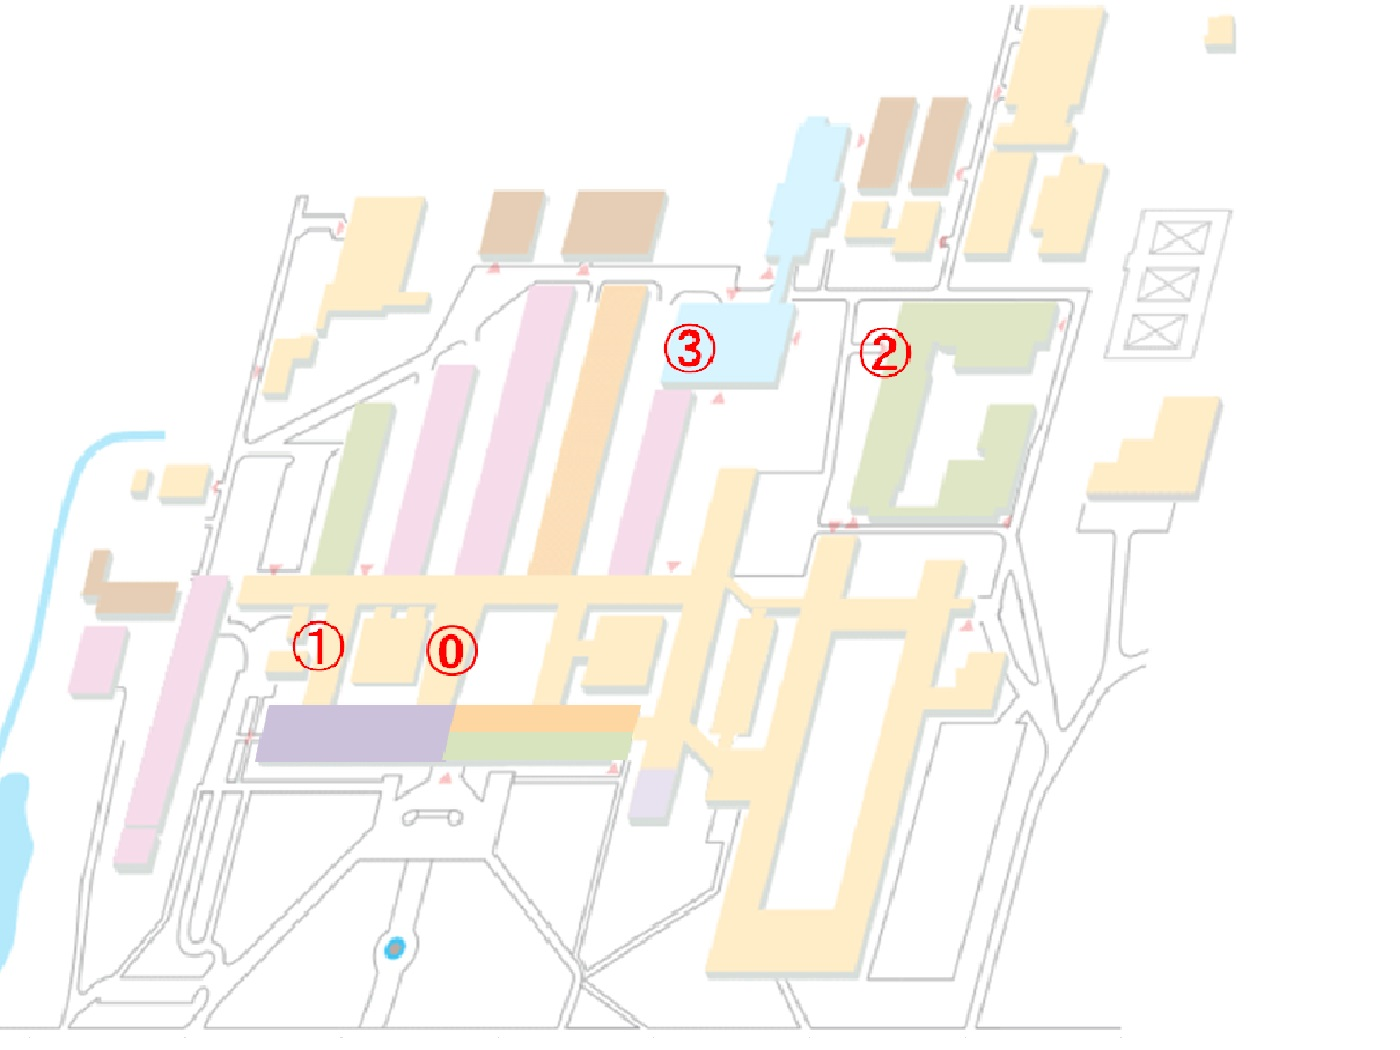 Library Map of Faculty of Engineering